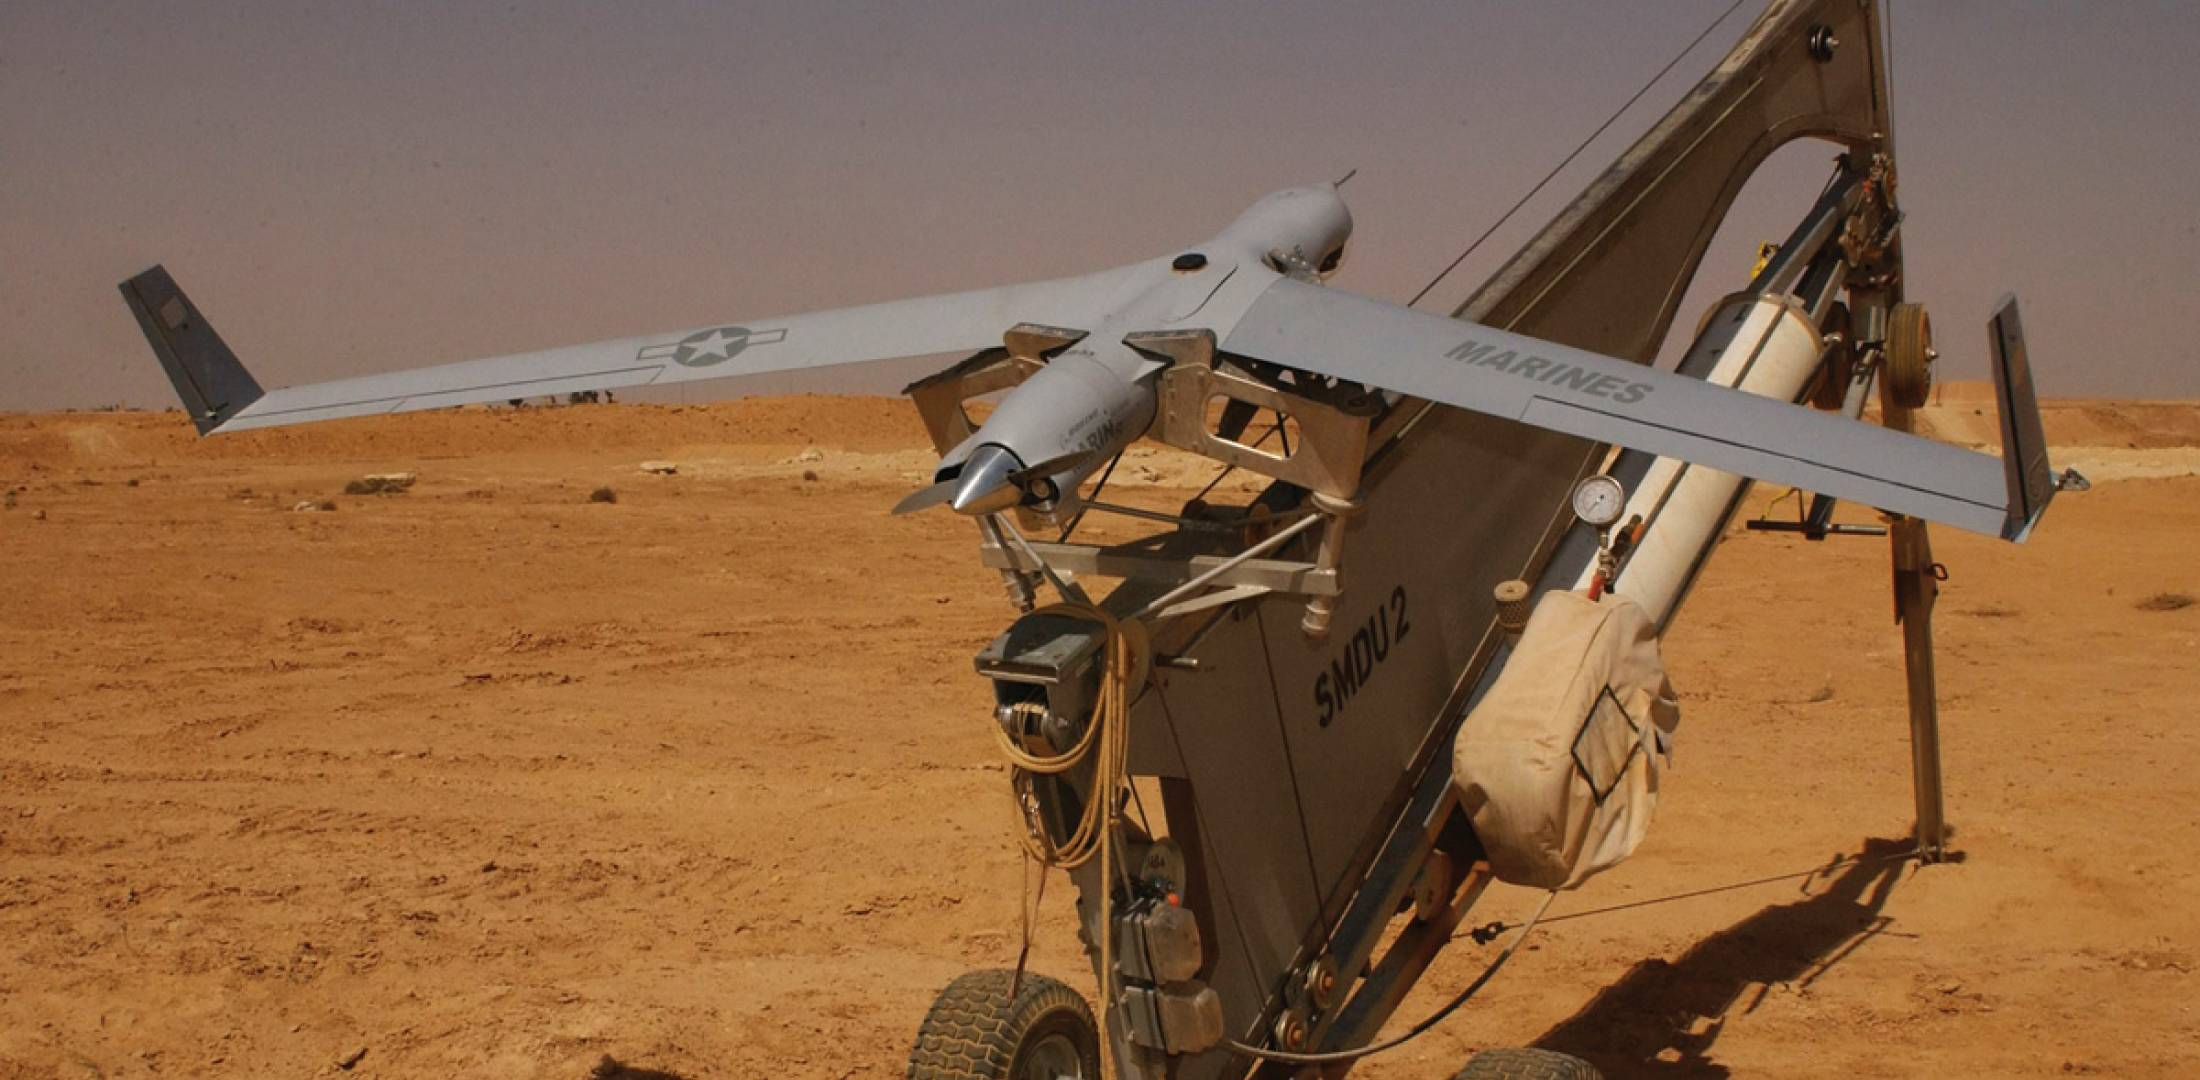 The Insitu ScanEagle received an FAA Part 21.25 restricted category type certificate on July 19, permitting operators to use it for commercial purposes.